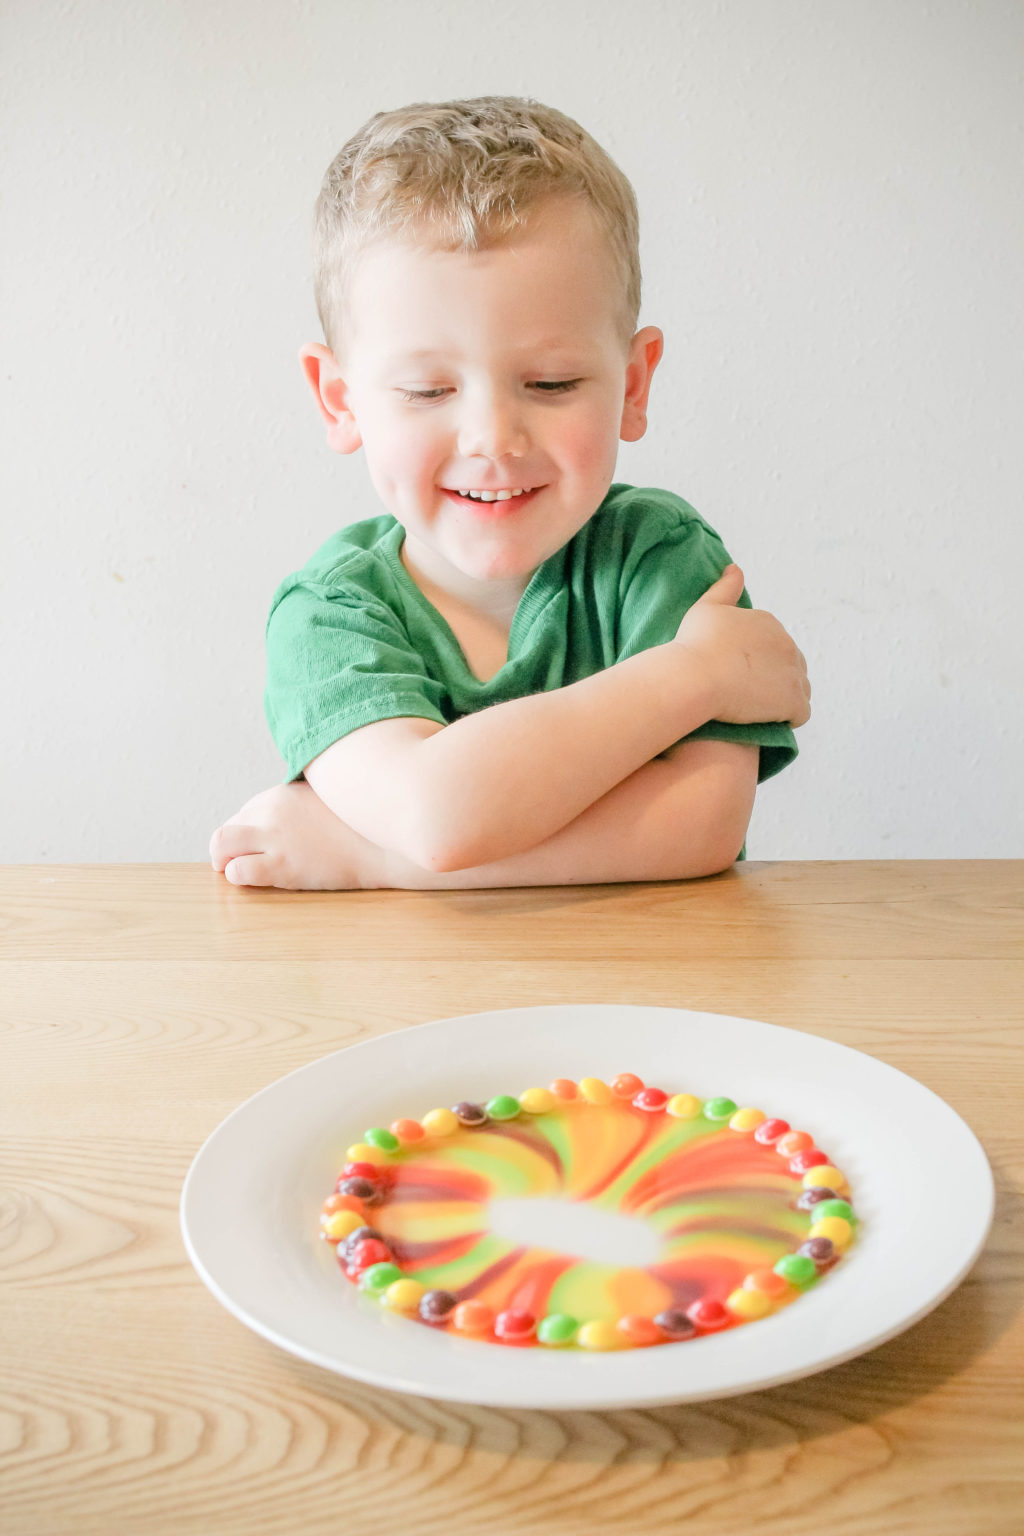 Looking for a unique way to celebrate St. Patrick's Day with your preschooler? These very simple science experiments for kids is a perfect way to combine the fun holiday staples (like the color green and rainbows) with learning. Try these science projects for preschoolers and you won't be sorry!